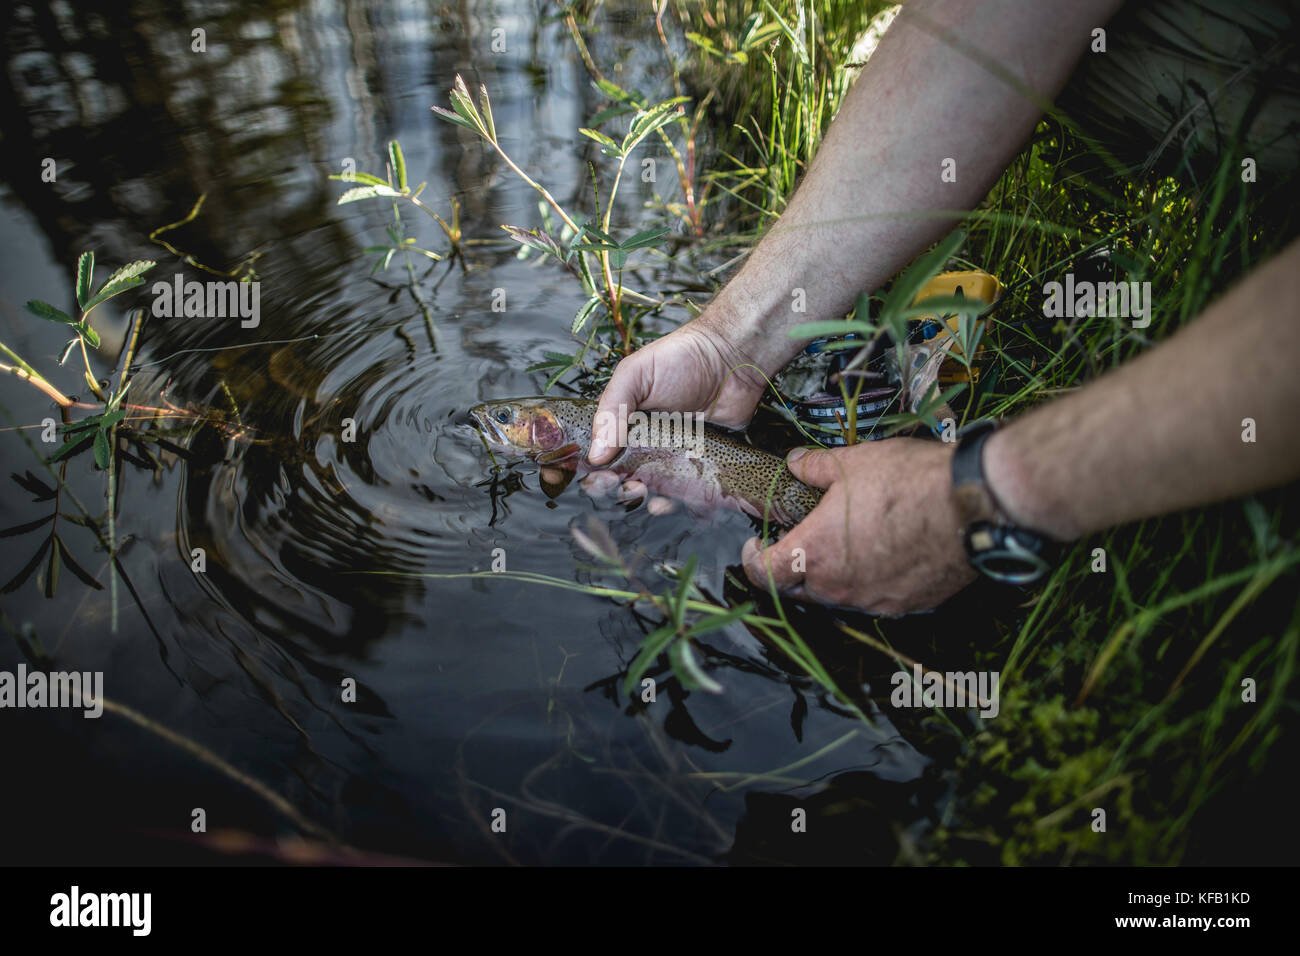 A fisherman releases a westslope cutthroat trout into Howe Lake at the Glacier National Park June 7, 2017 in Montana. Stock Photo